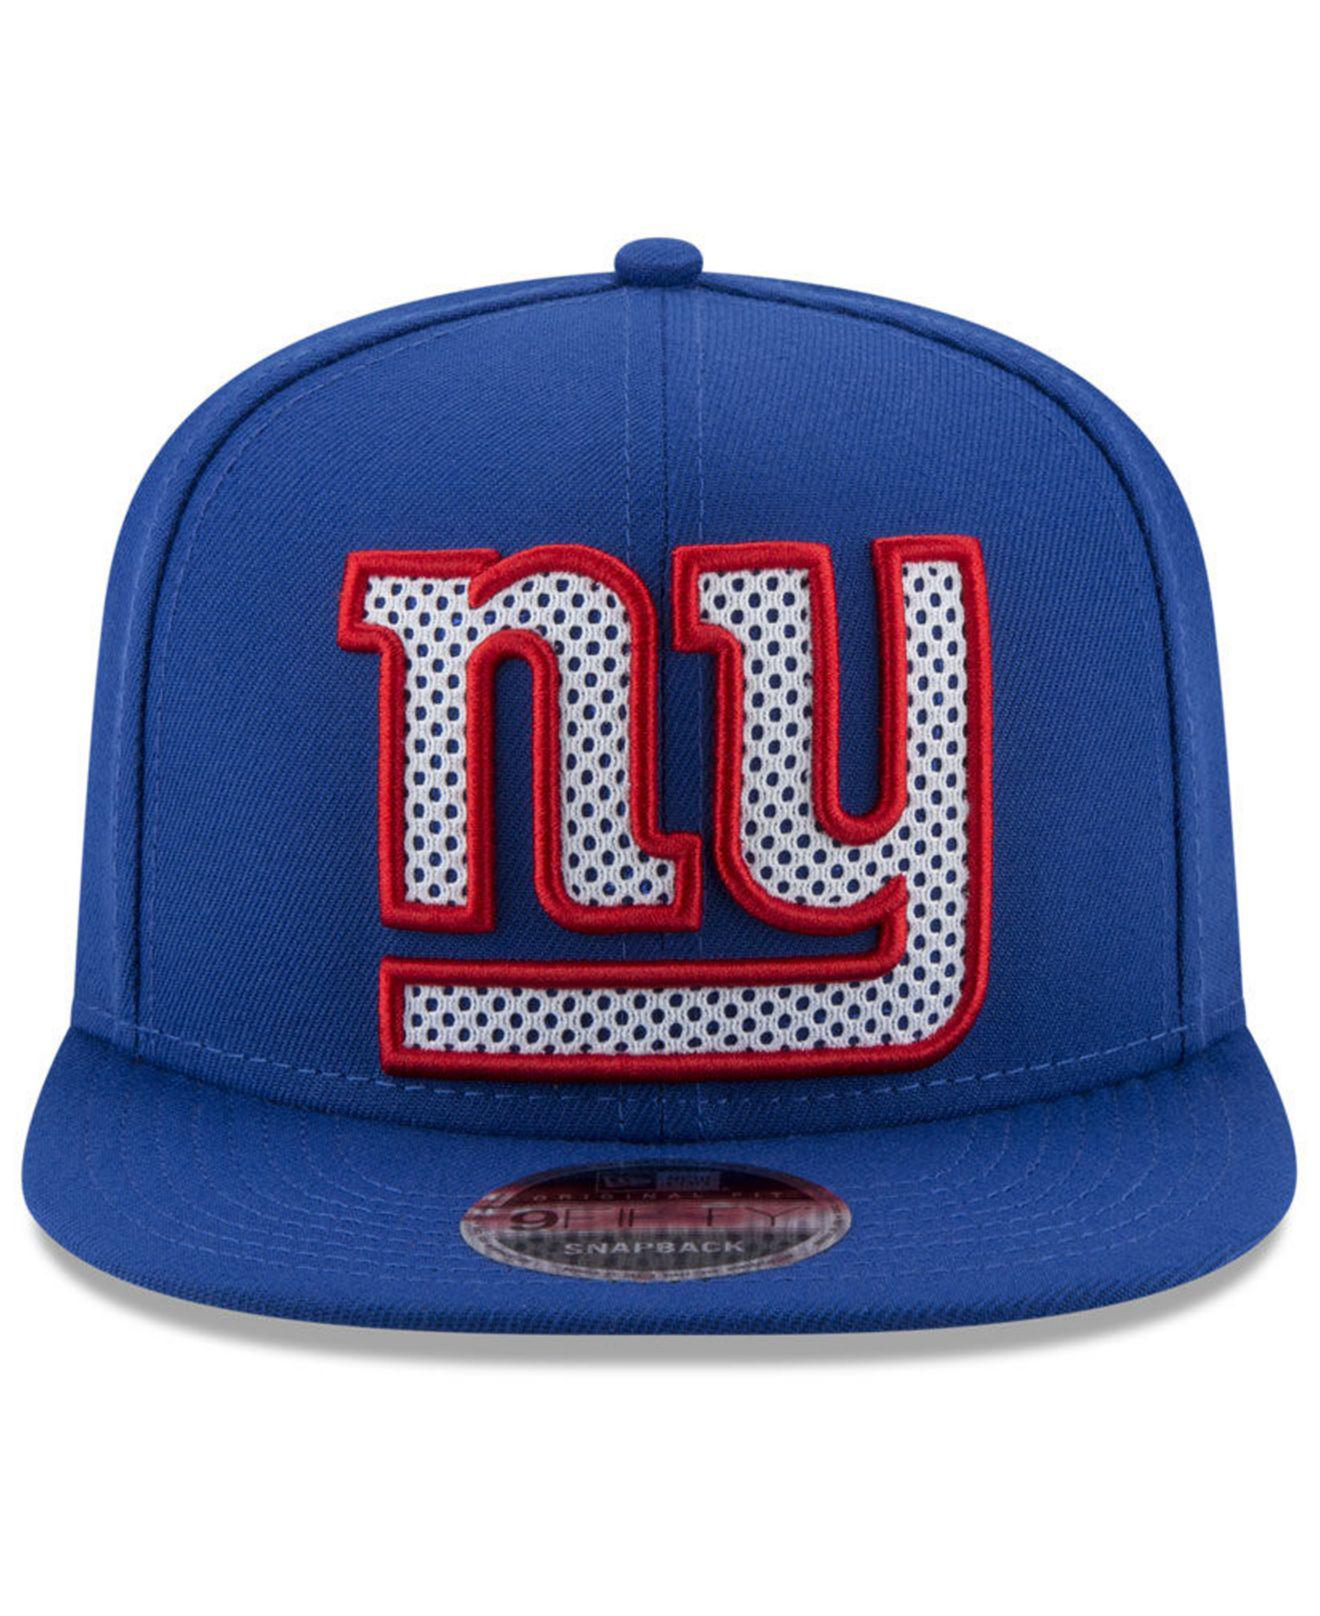 11801dd894b Lyst - Ktz New York Giants Meshed Mix 9fifty Snapback Cap in Blue for Men